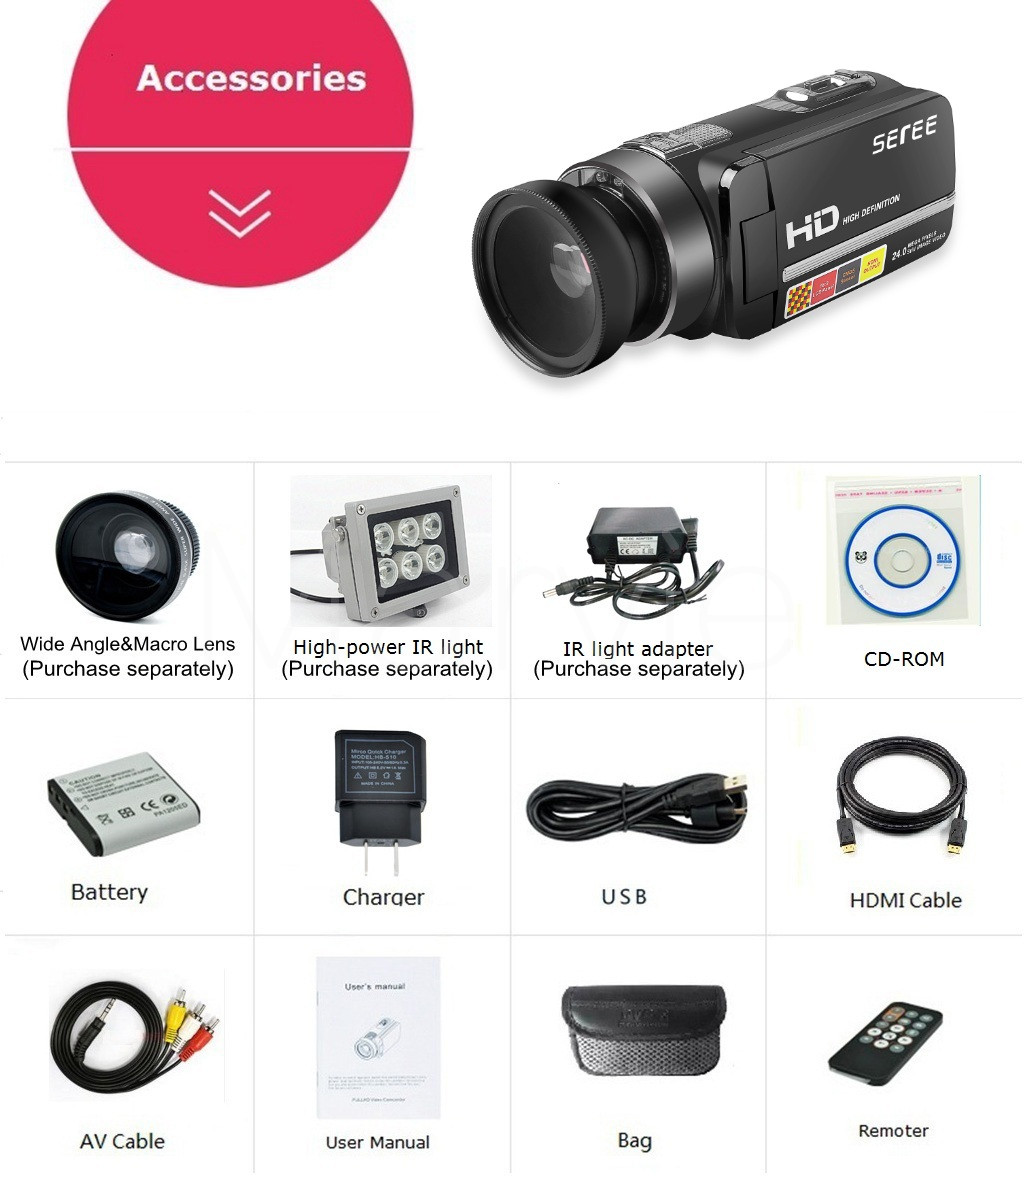 Seree 17 Latest HDV-301 Portable Camcorder Full HD 1080P 16x Digital Zoom Digital Video Camera Recorder DVR 12